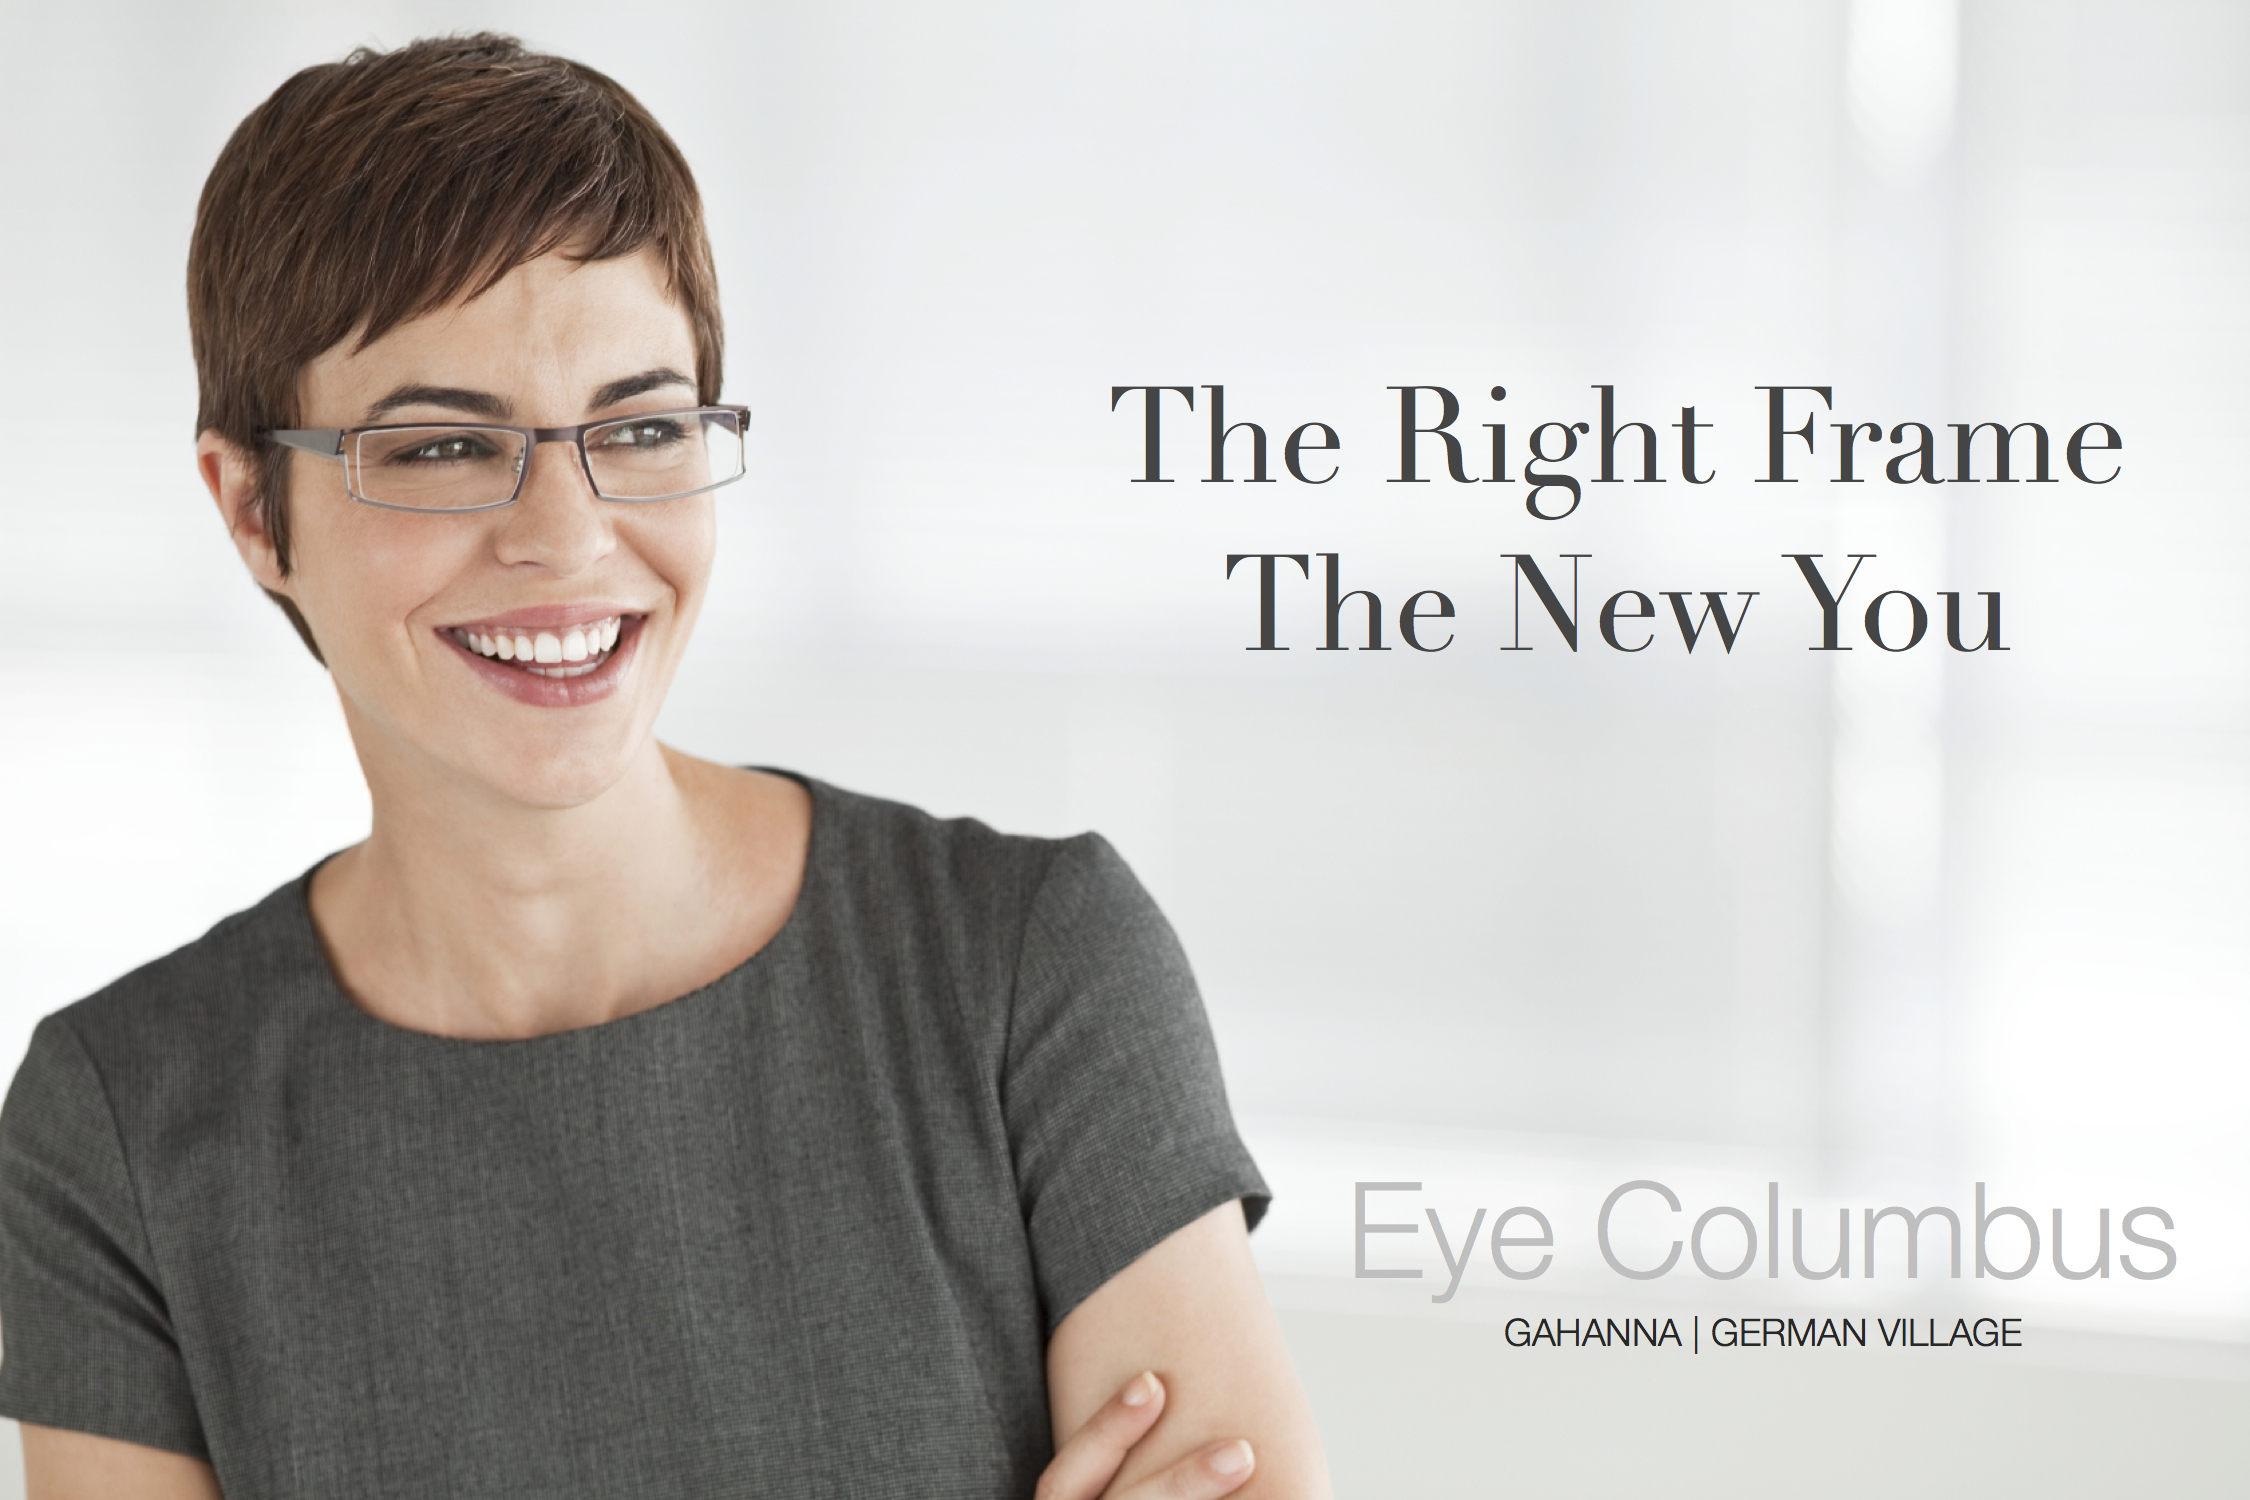 TV The right frame the new you.jpg